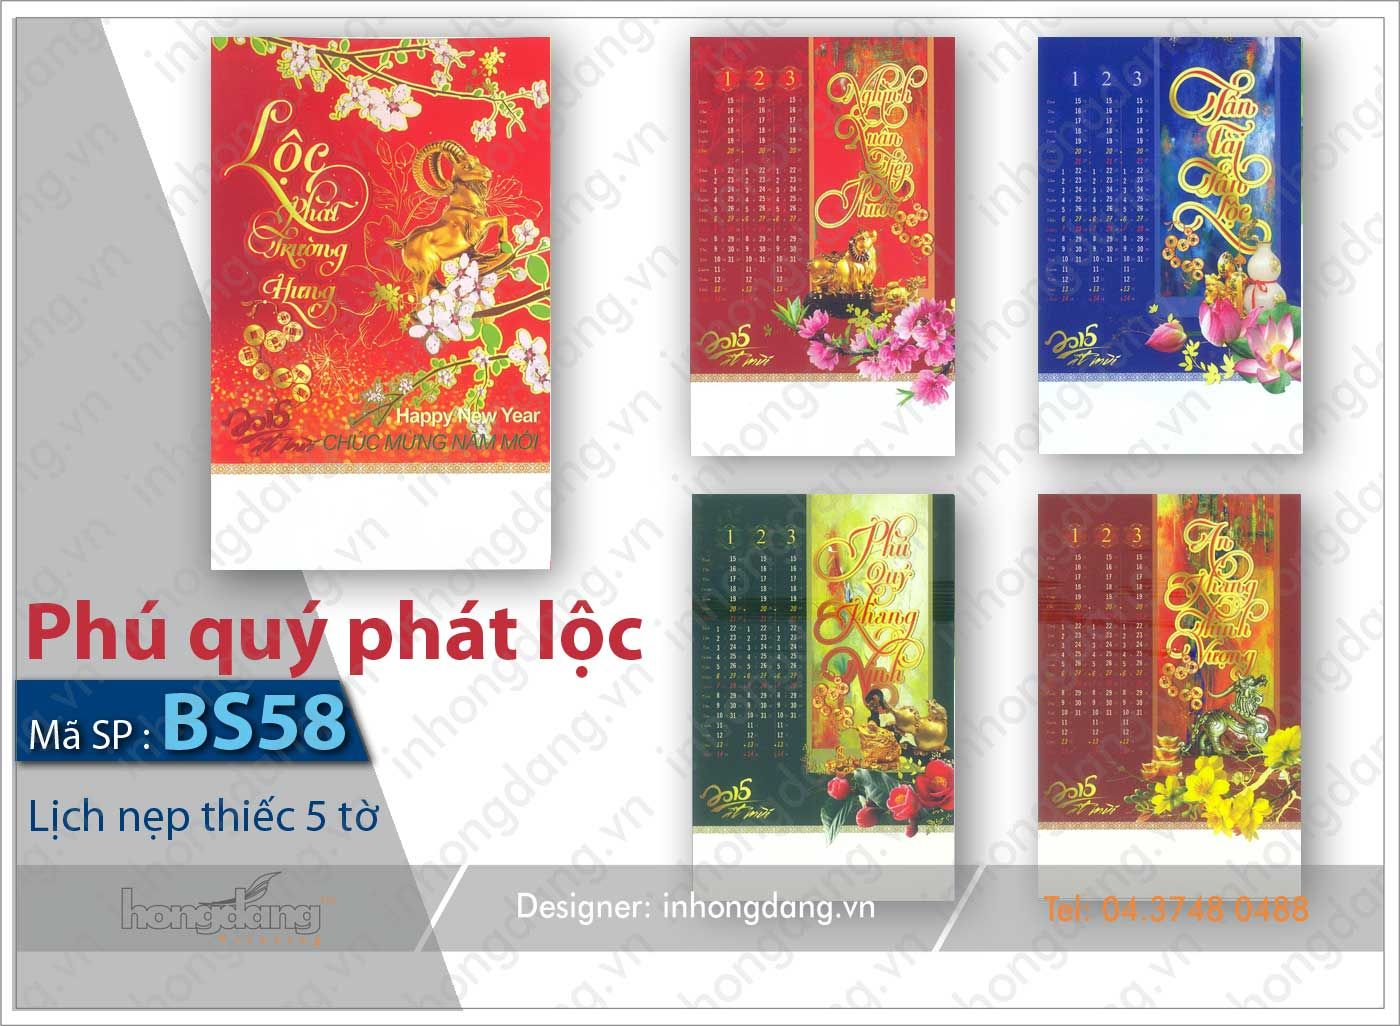 http://inhongdang.vn/in-an/in-lich/in-lich-nep-thiec-5-to